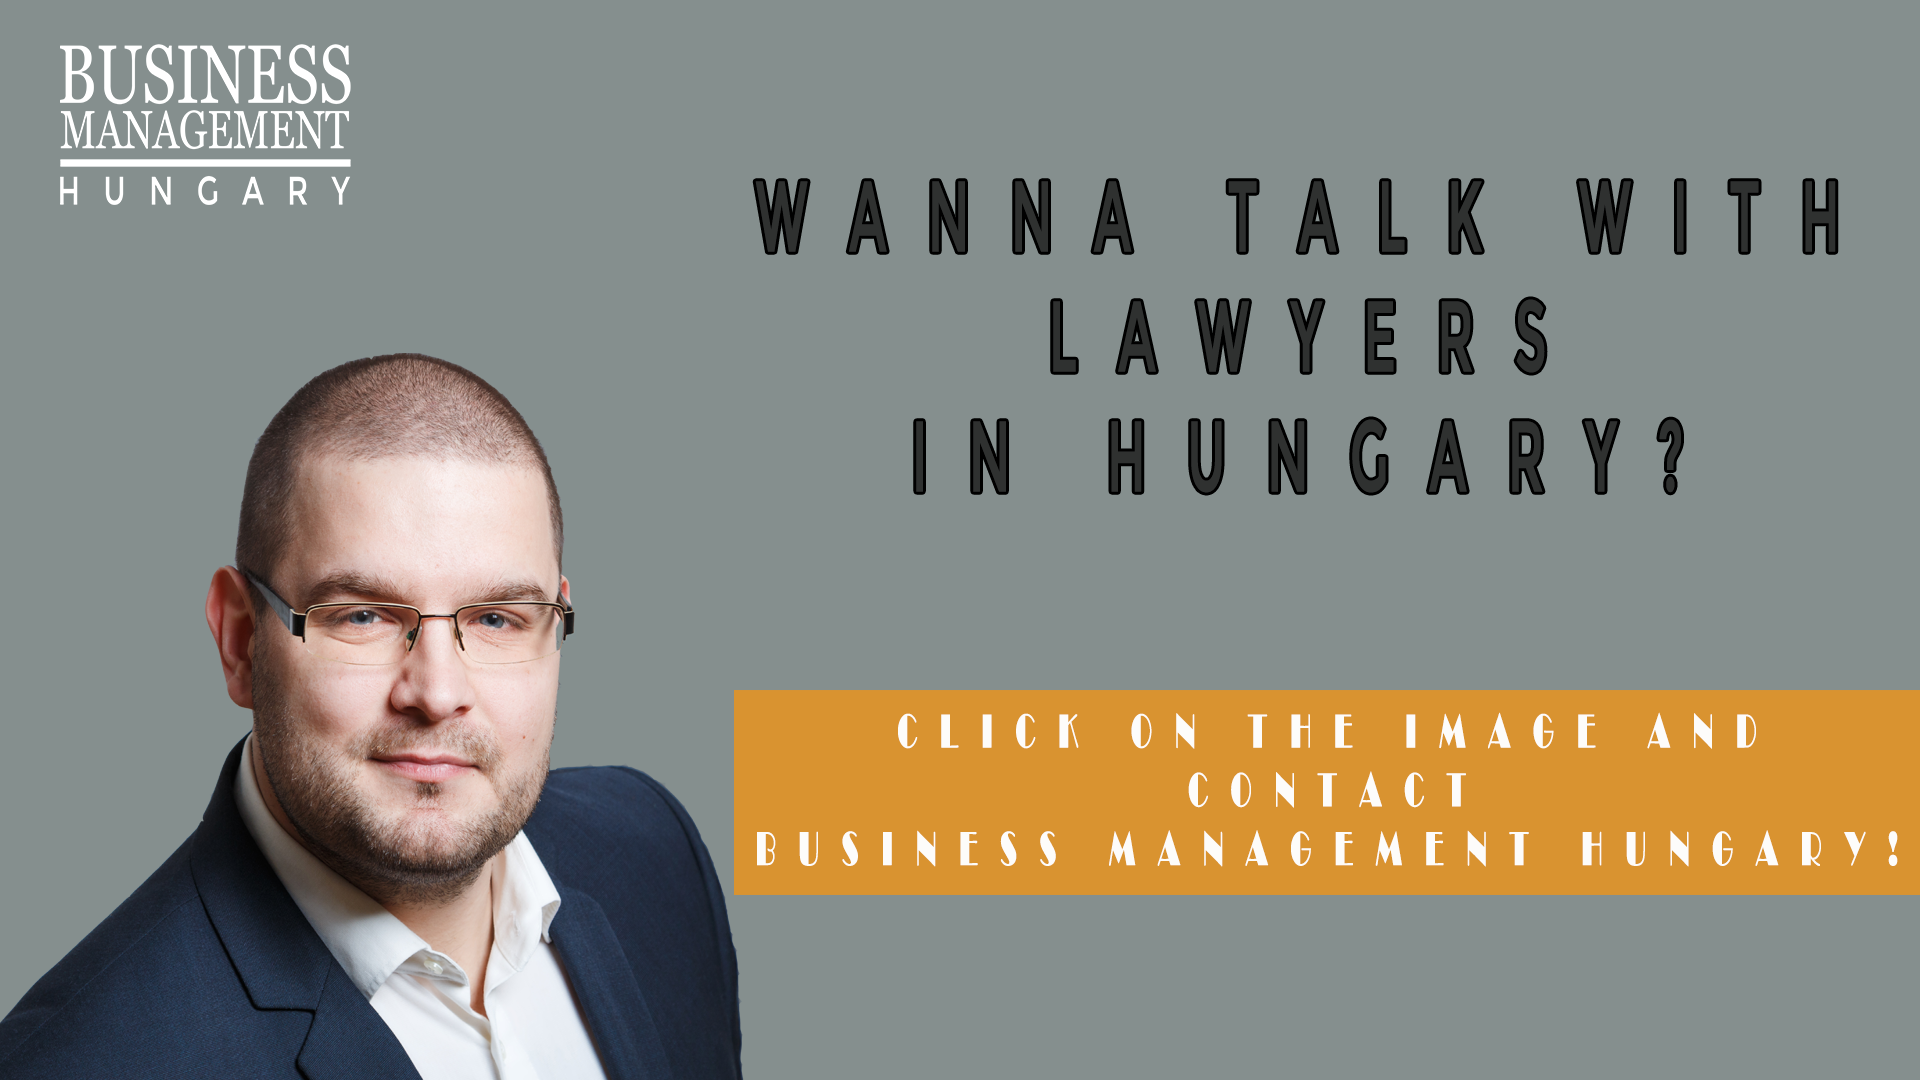 Lawyers in Hungary: Contact Us